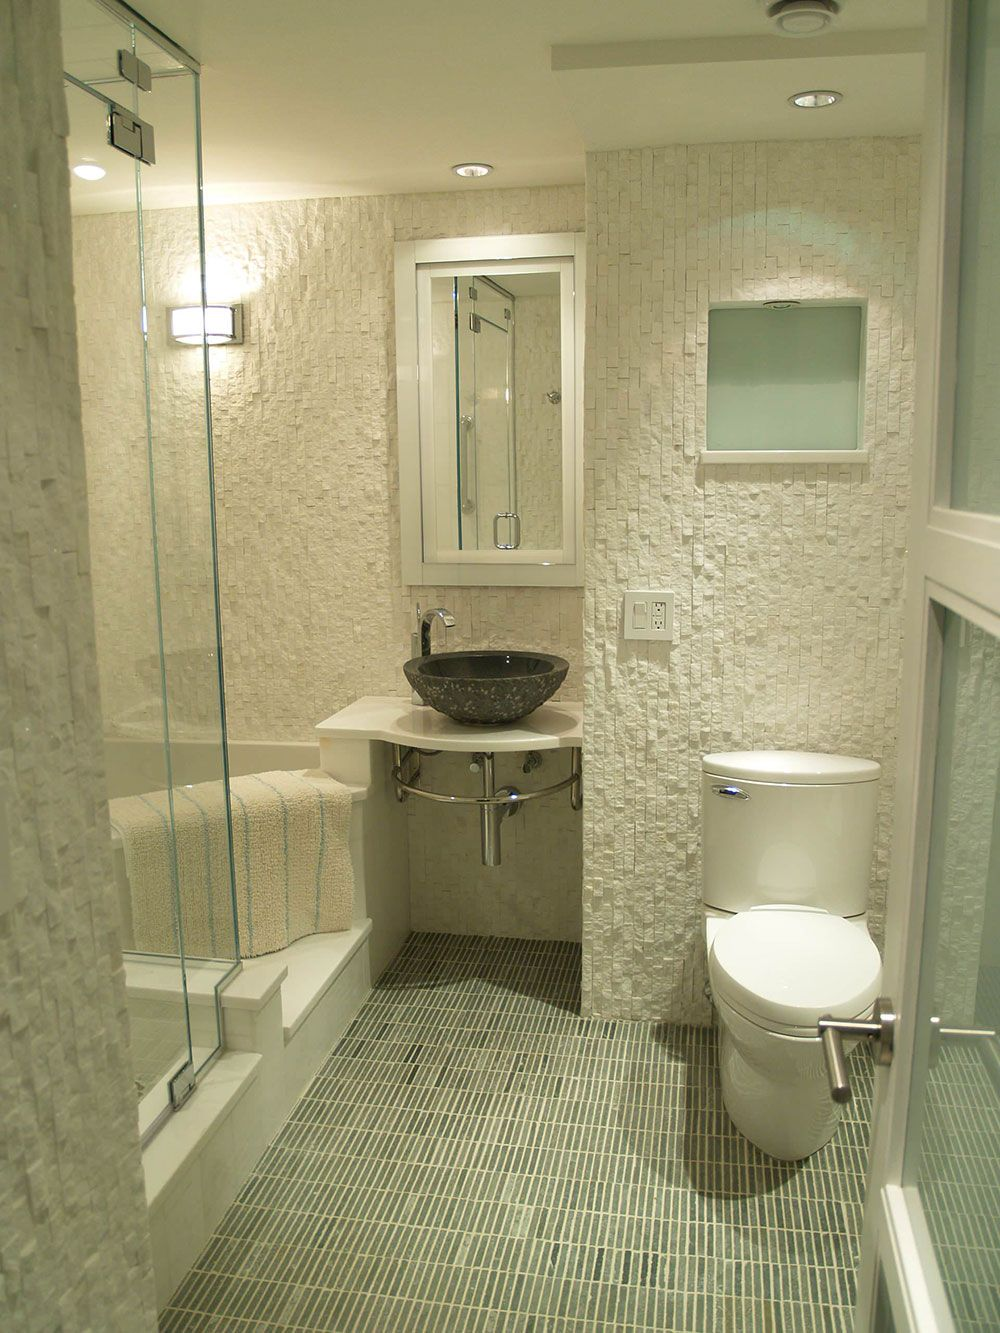 How To Make A Small Bathroom Look Bigger Tips And Ideas Small Bathroom Small Full Bathroom Bathroom Design